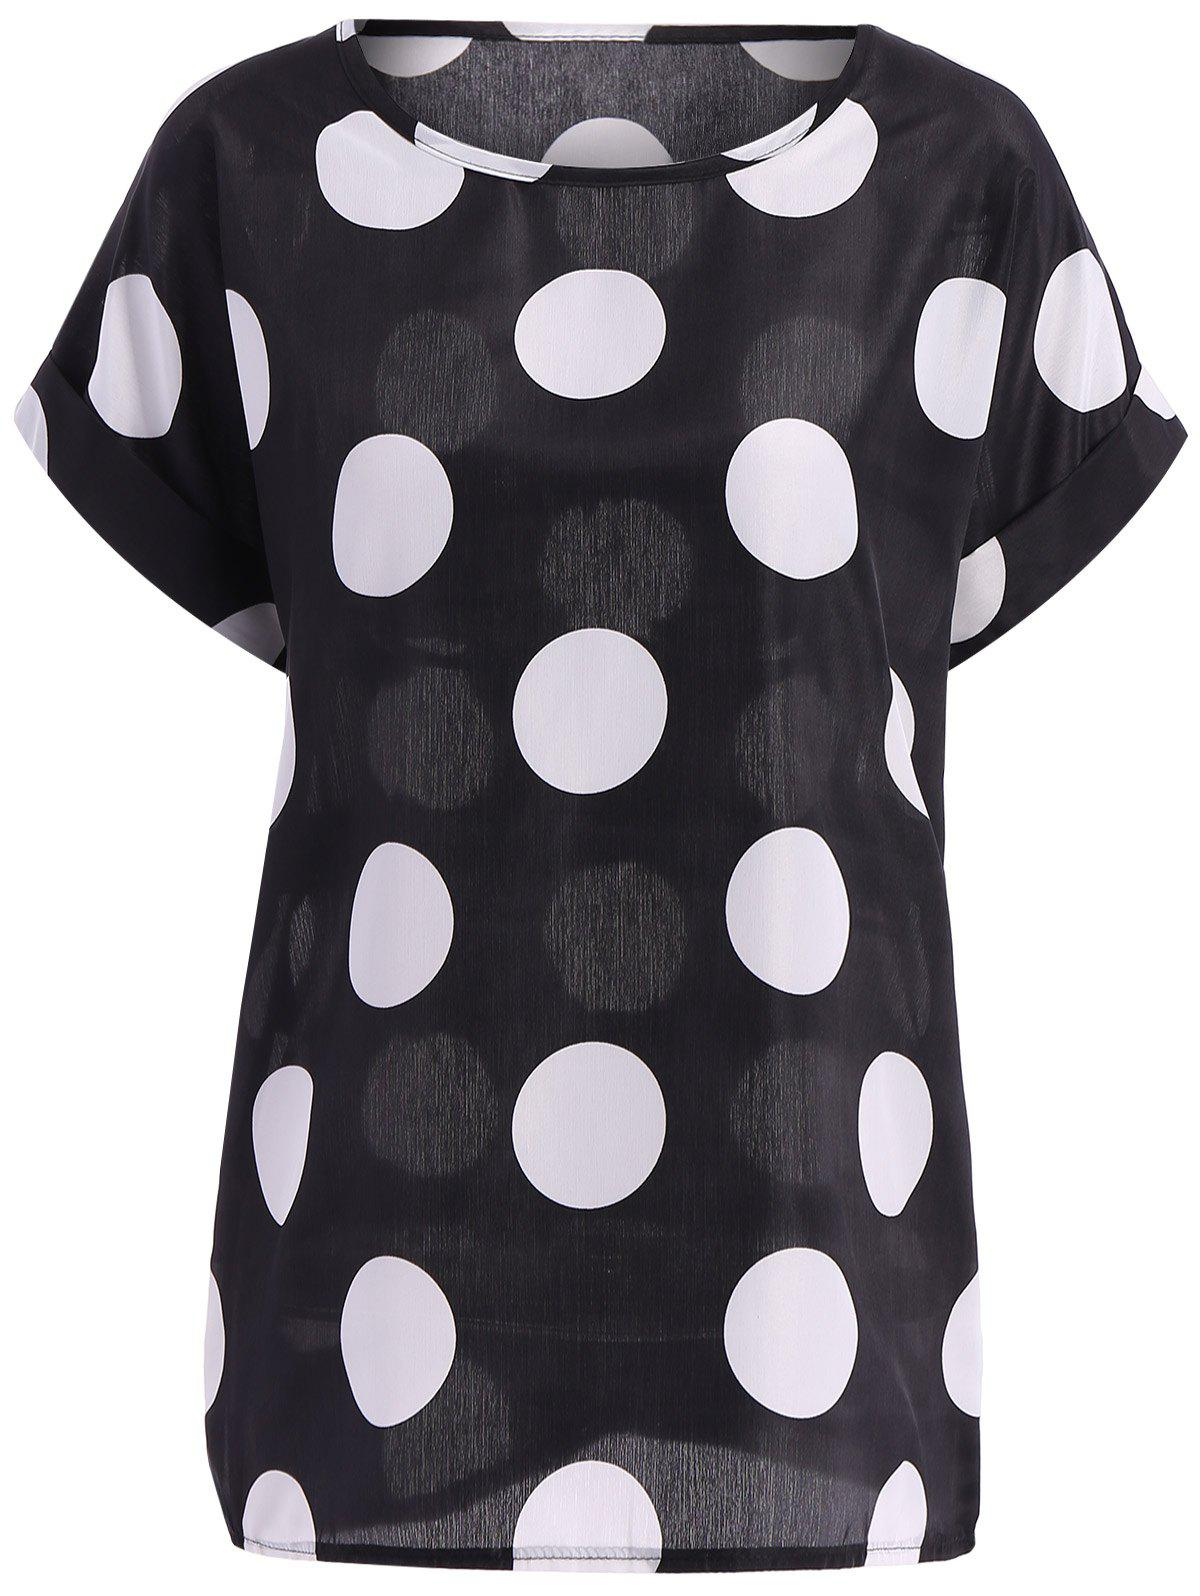 Casual Summer Women's Plus Size Scoop Neck Polka Dot Pattern Short Sleeves Blouse - BLACK 2XL